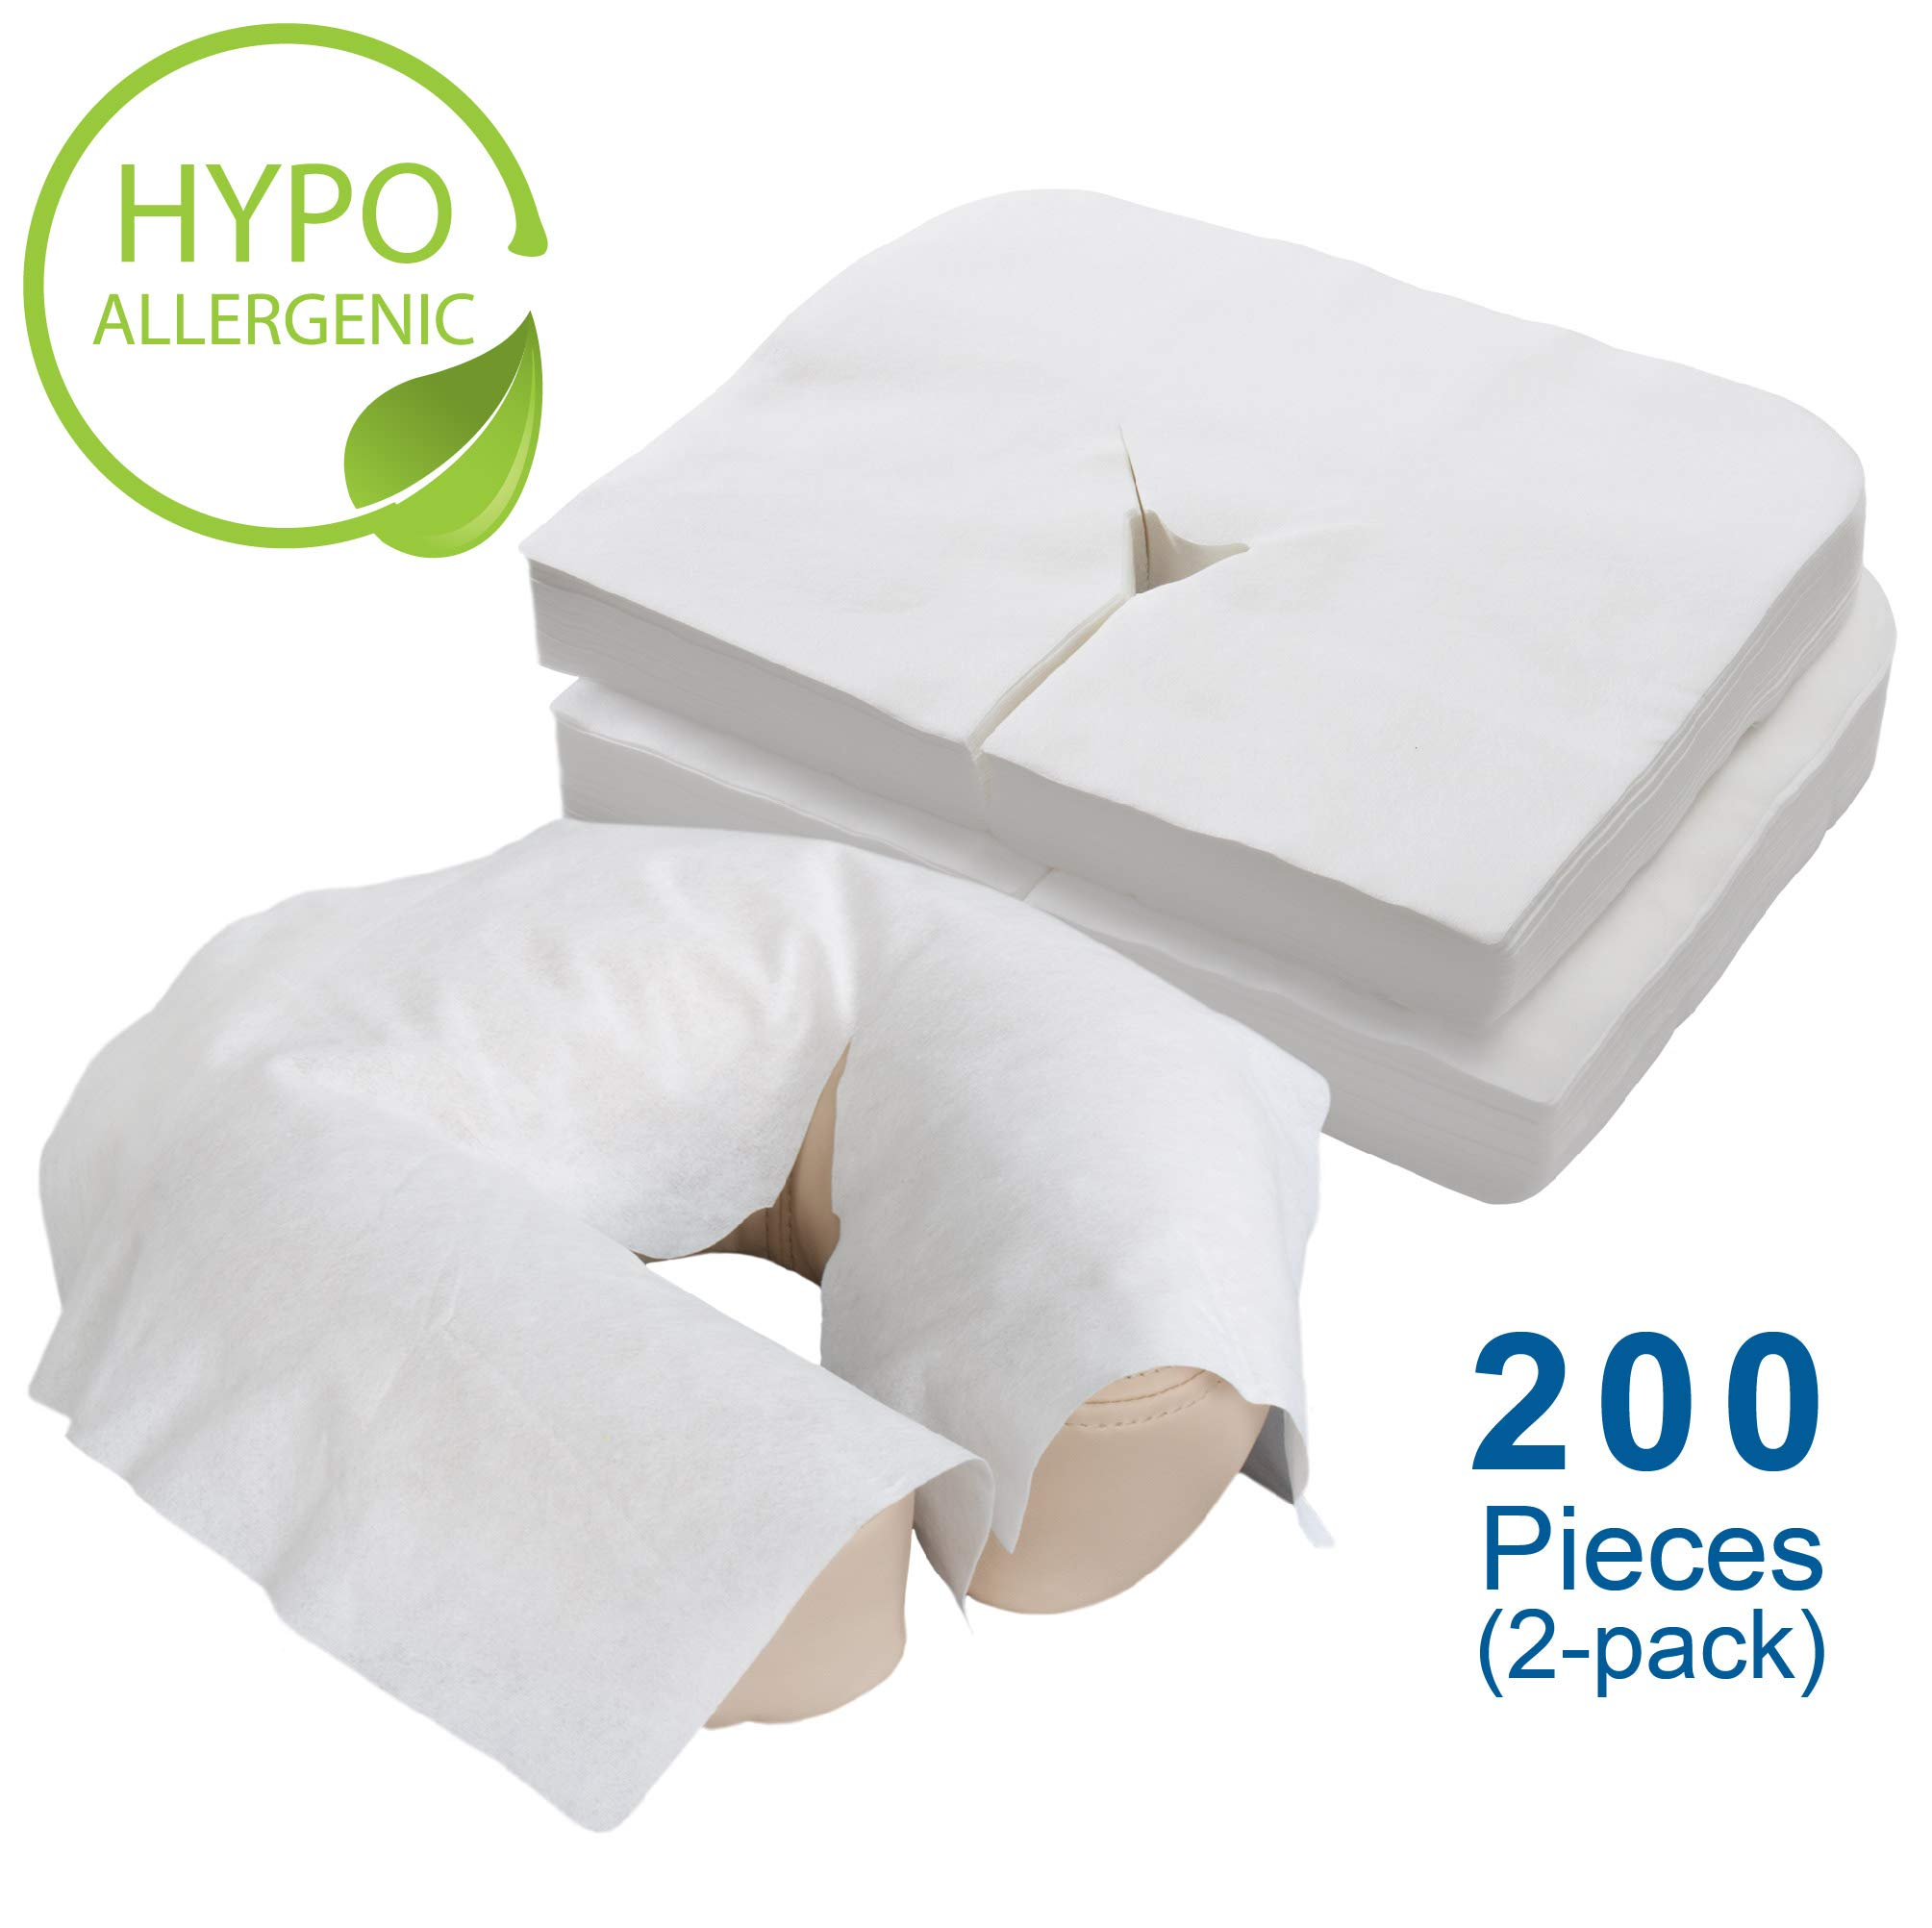 EARTHLITE Disposable Face Cradle Covers - Medical-Grade, Ultra Soft, Luxurious, Non-Sticking Massage Face Covers/Headrest Covers for Massage Tables & Massage Chairs